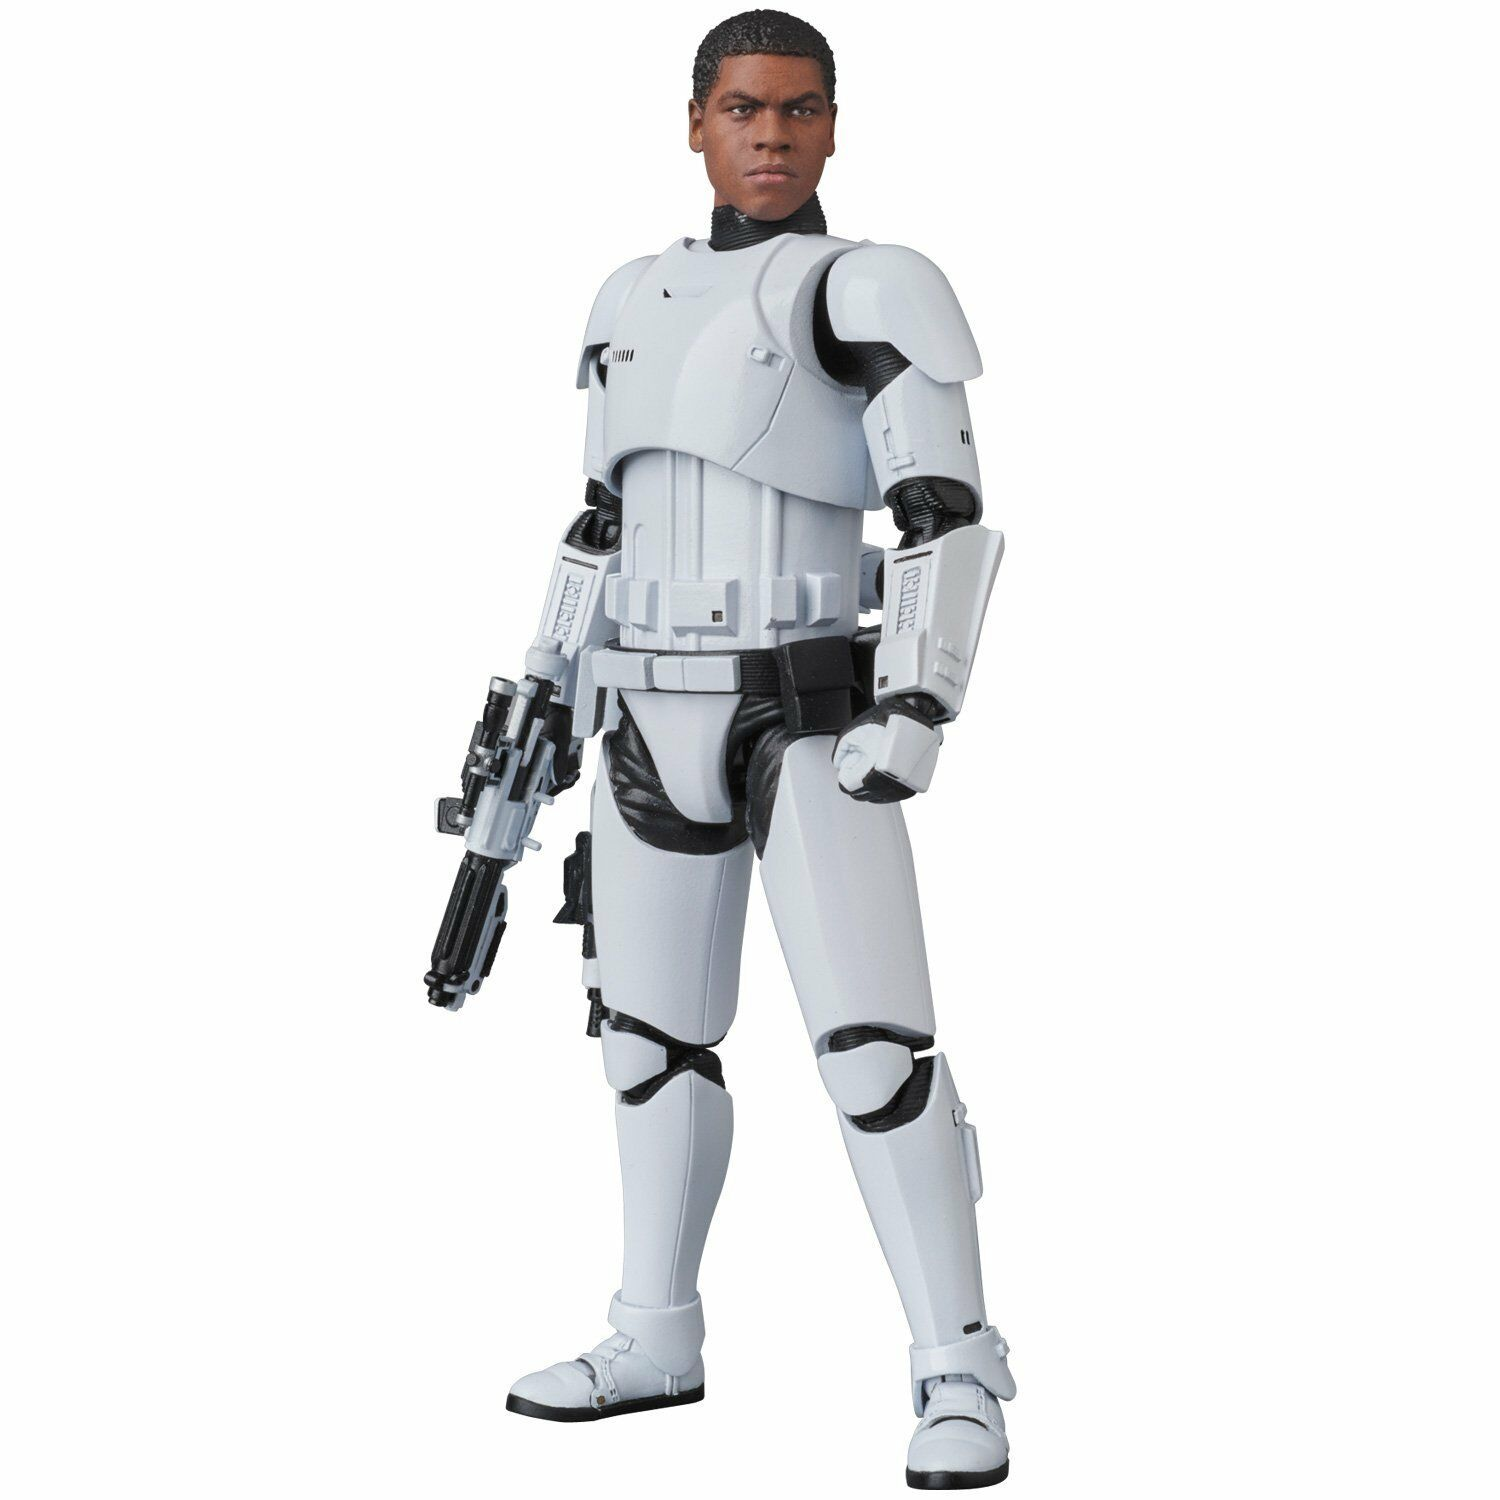 Medicom Toy MAFEX Star Wars The Force Awakens FN-2187 (Finn) Japan version